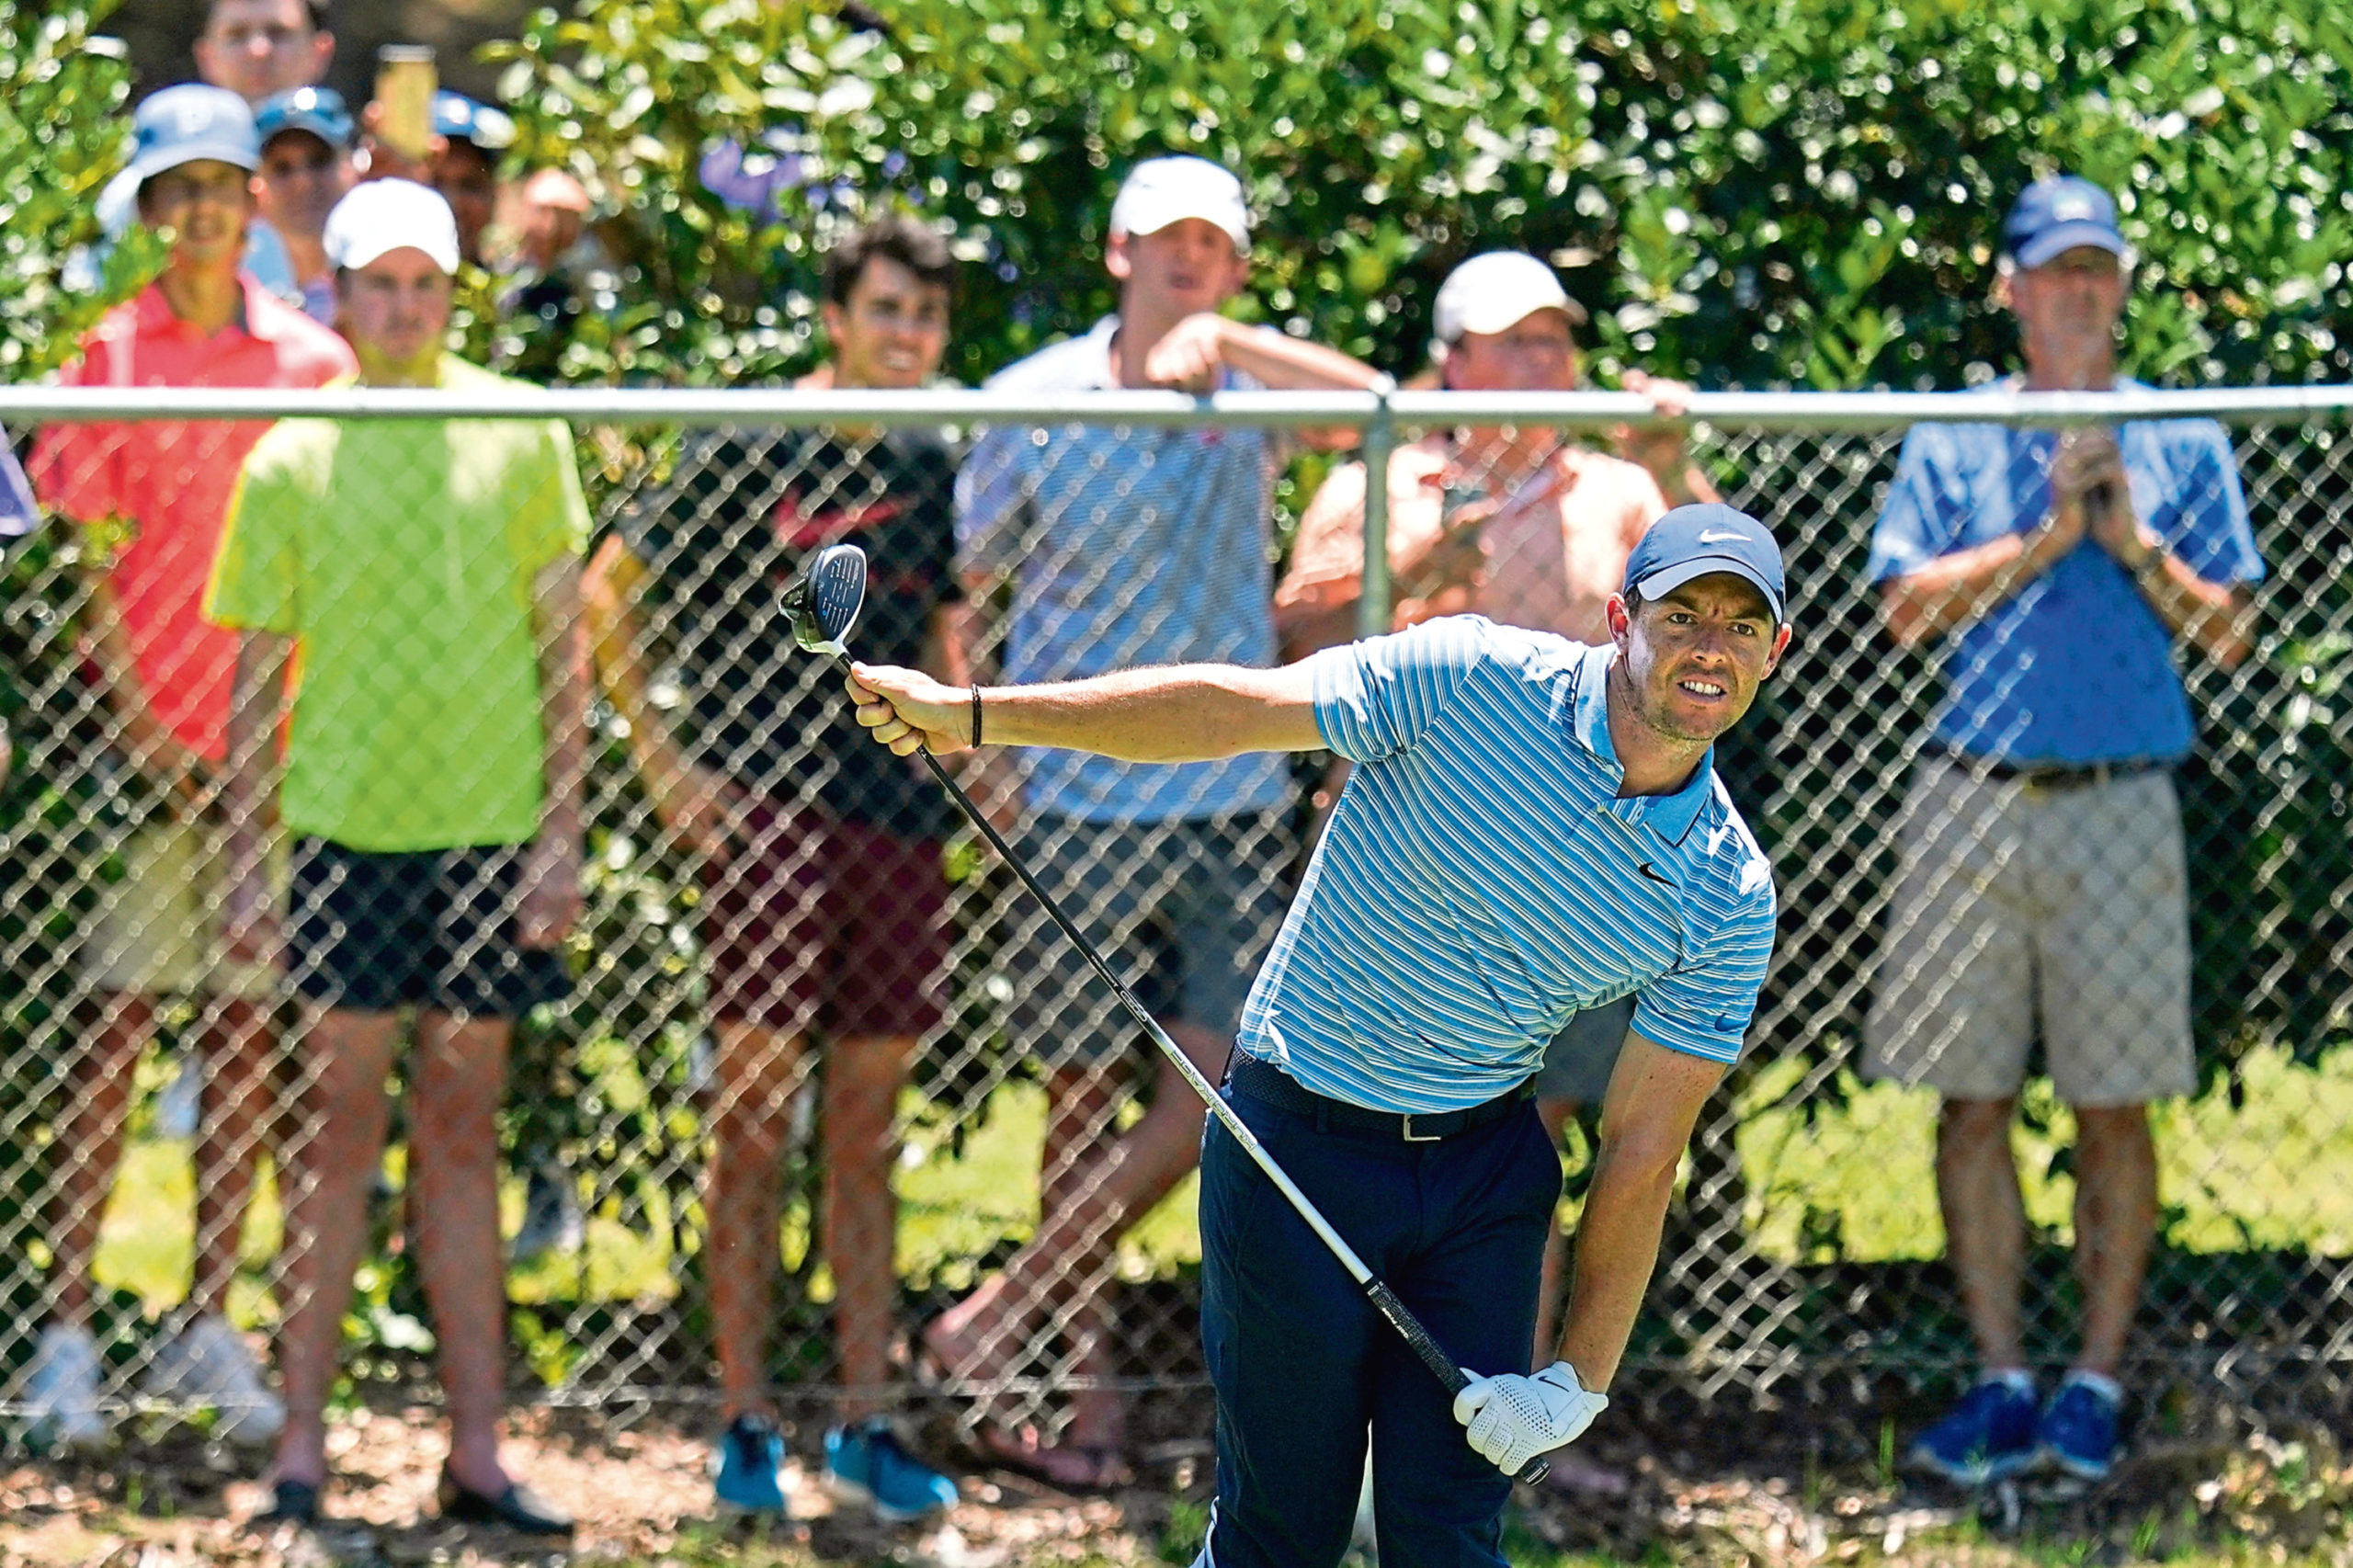 Fans weren't allowed into Colonial for the PGA Tour's restart, but watched from afar anyway.